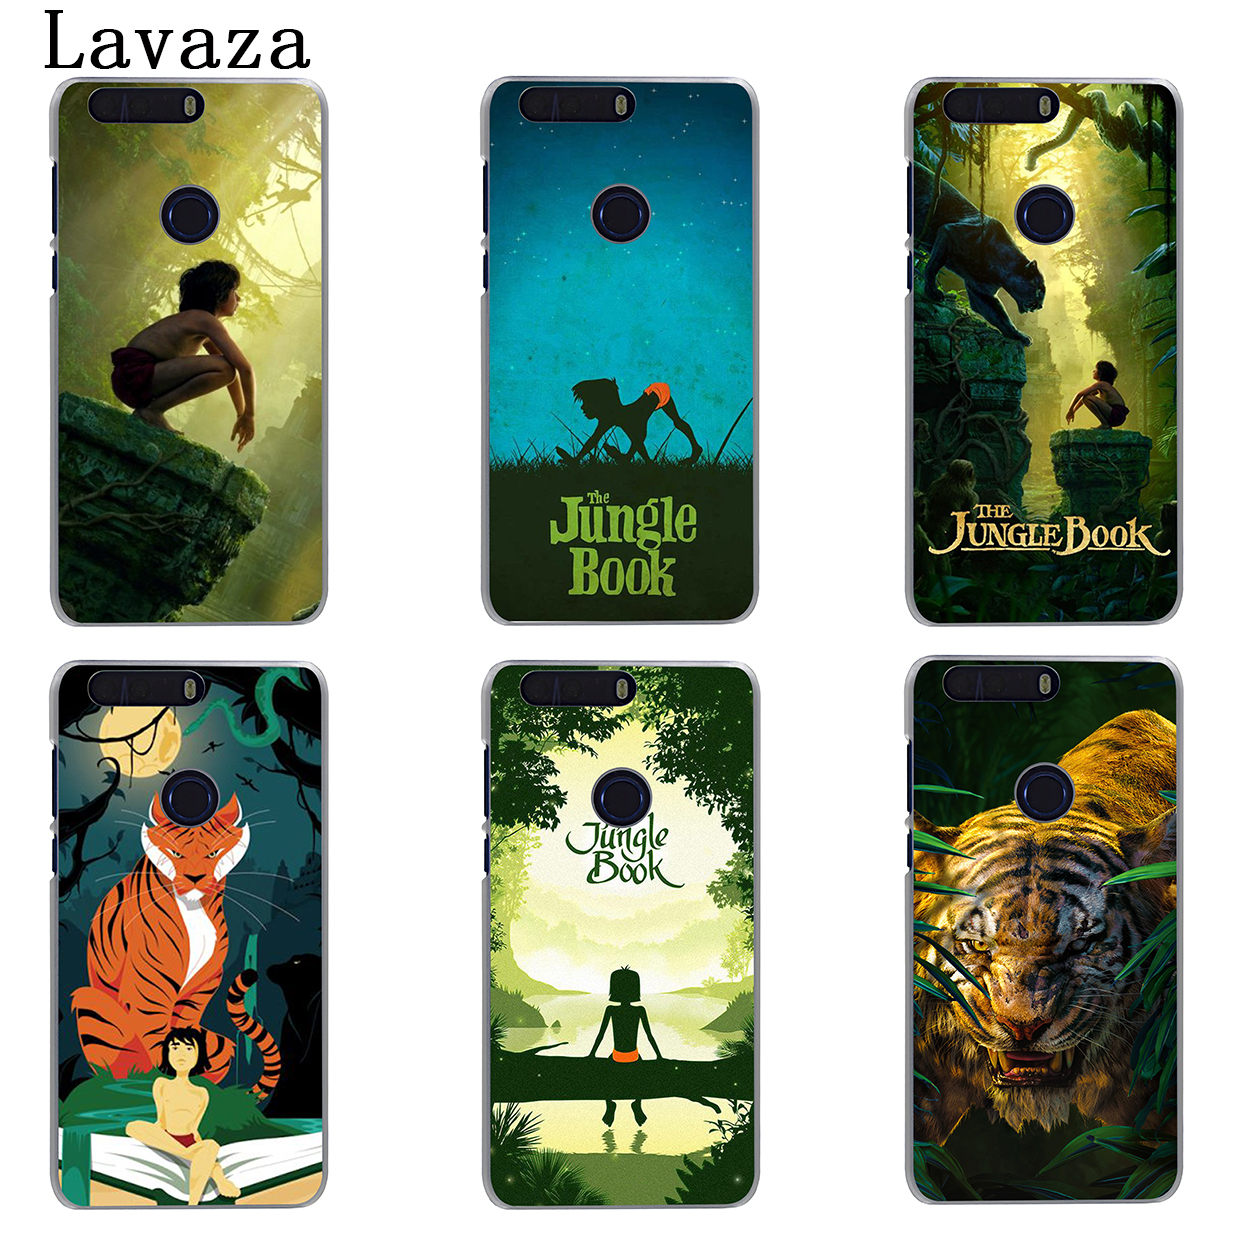 Lavaza The Jungle Book Hard Phone Shell Case for Huawei Mate 10 Lite Pro G7 & Honor 9 8 Lite 7 7X 6 6A 6X 4X 4C Cover